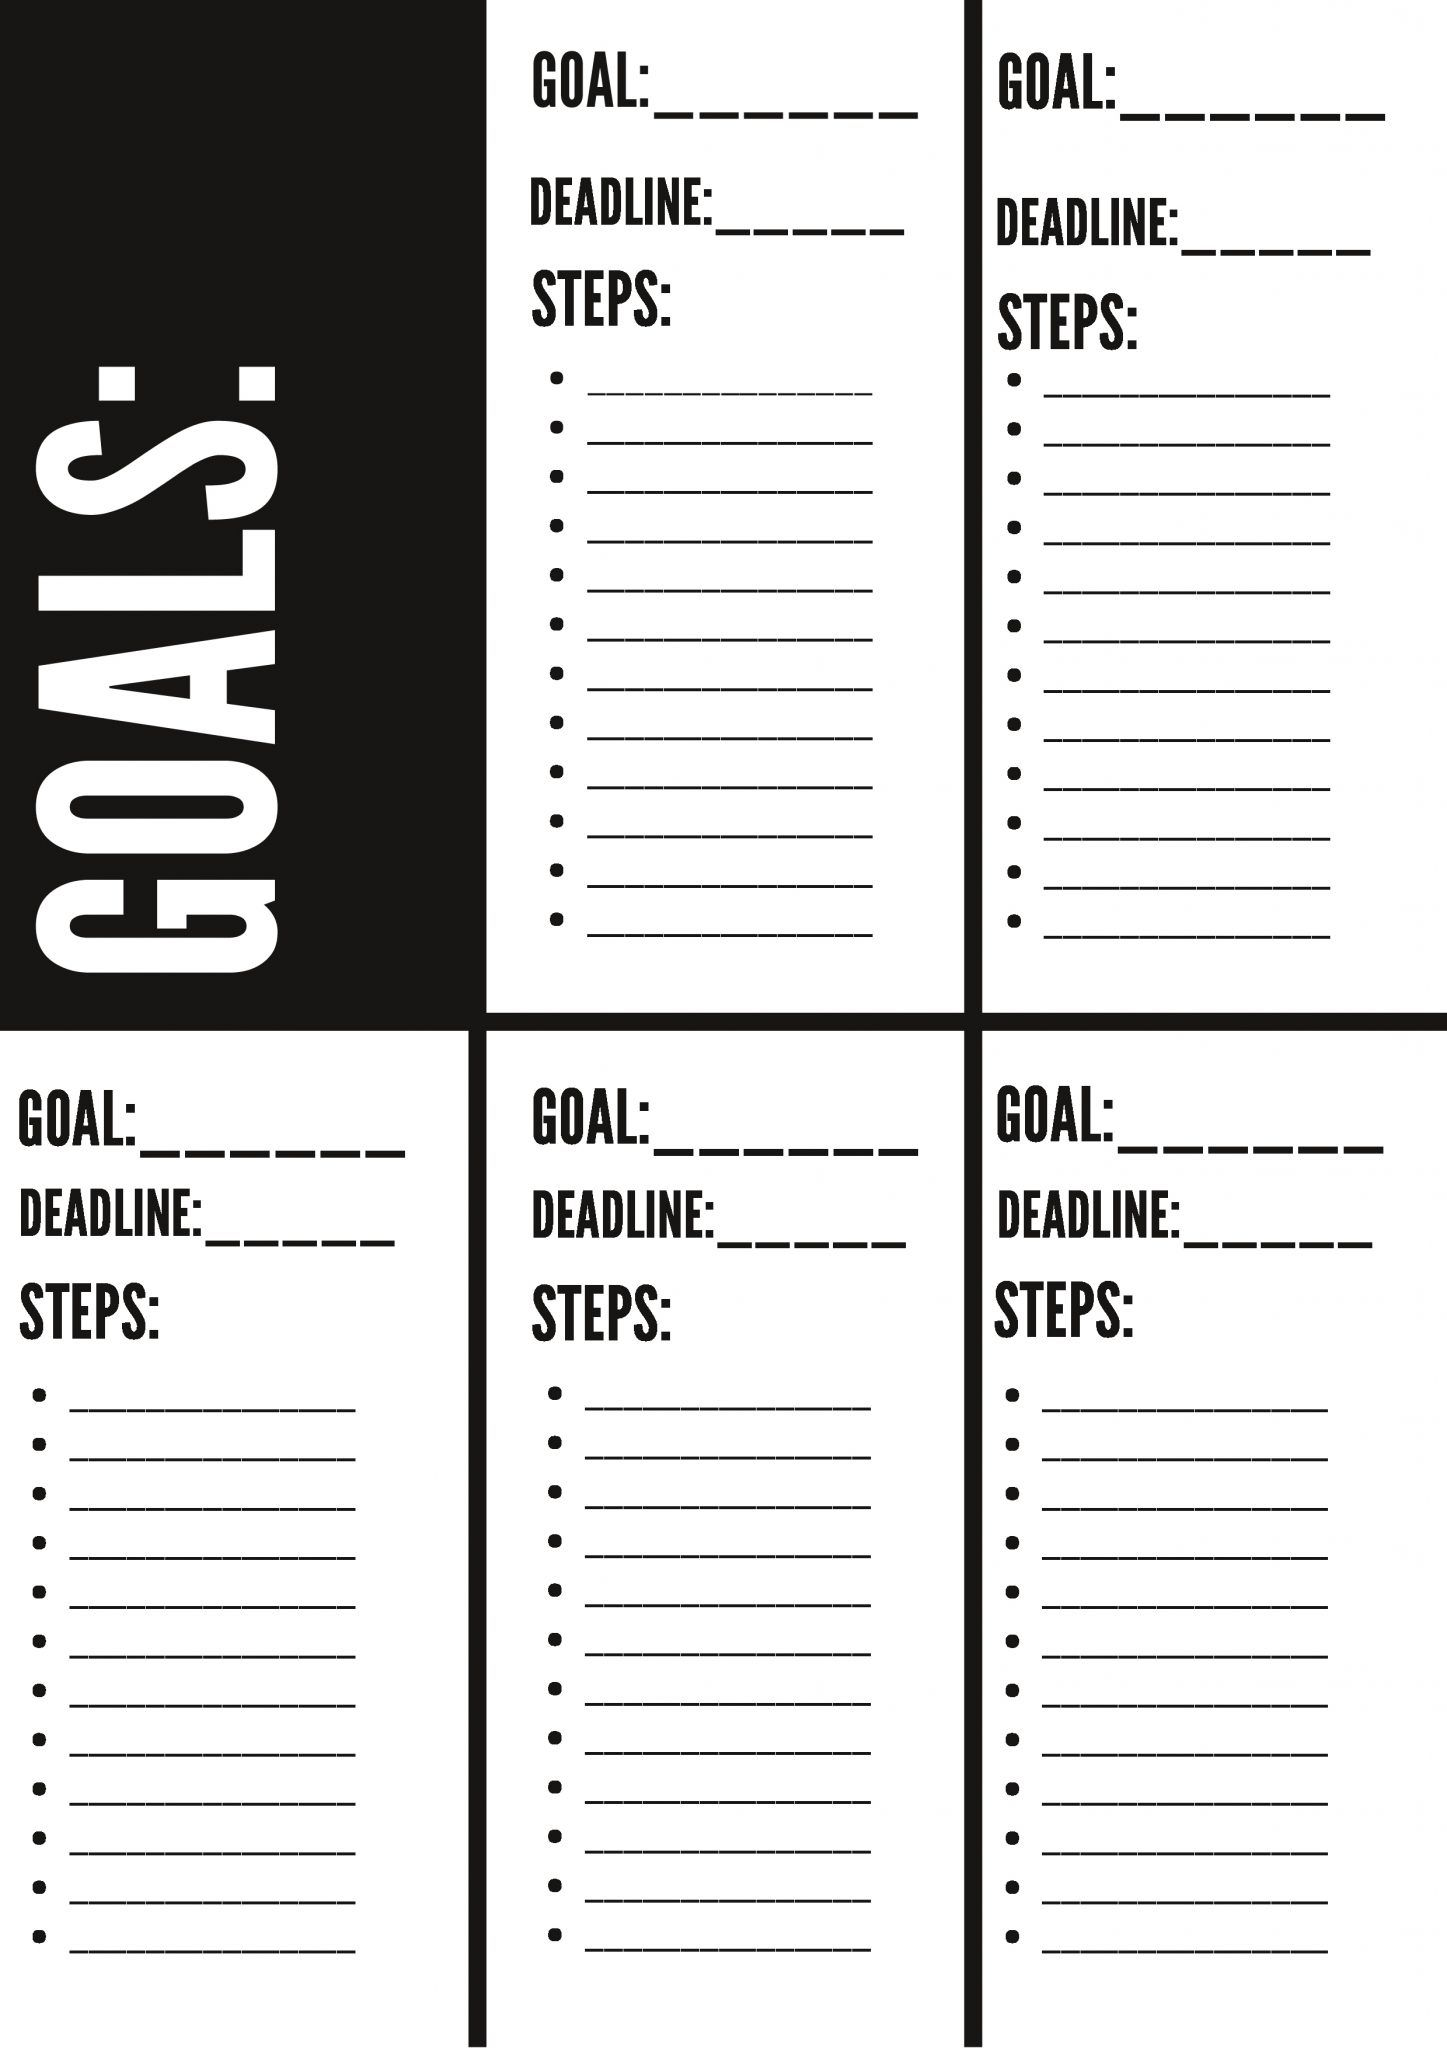 Free Goal Setting Worksheet Printable In